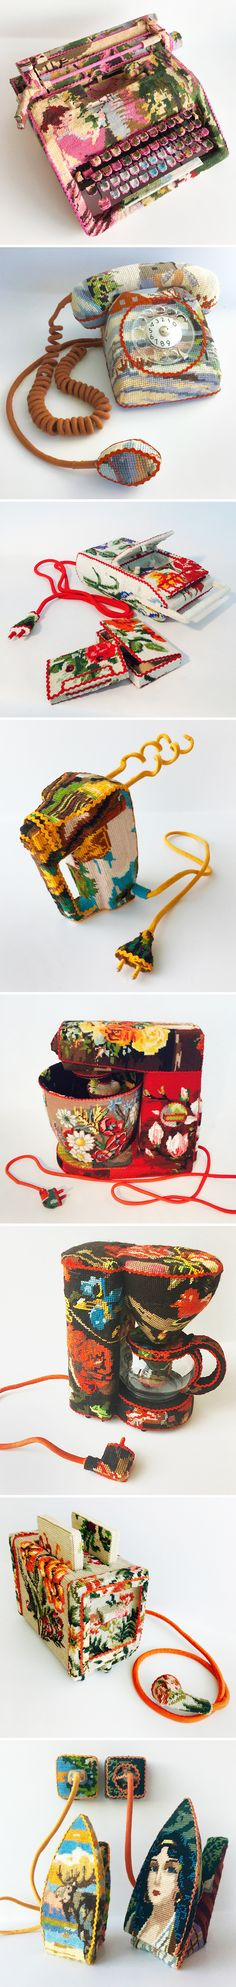 found objects covered with found cross-stitch <3 work by  ulla-stina wikander